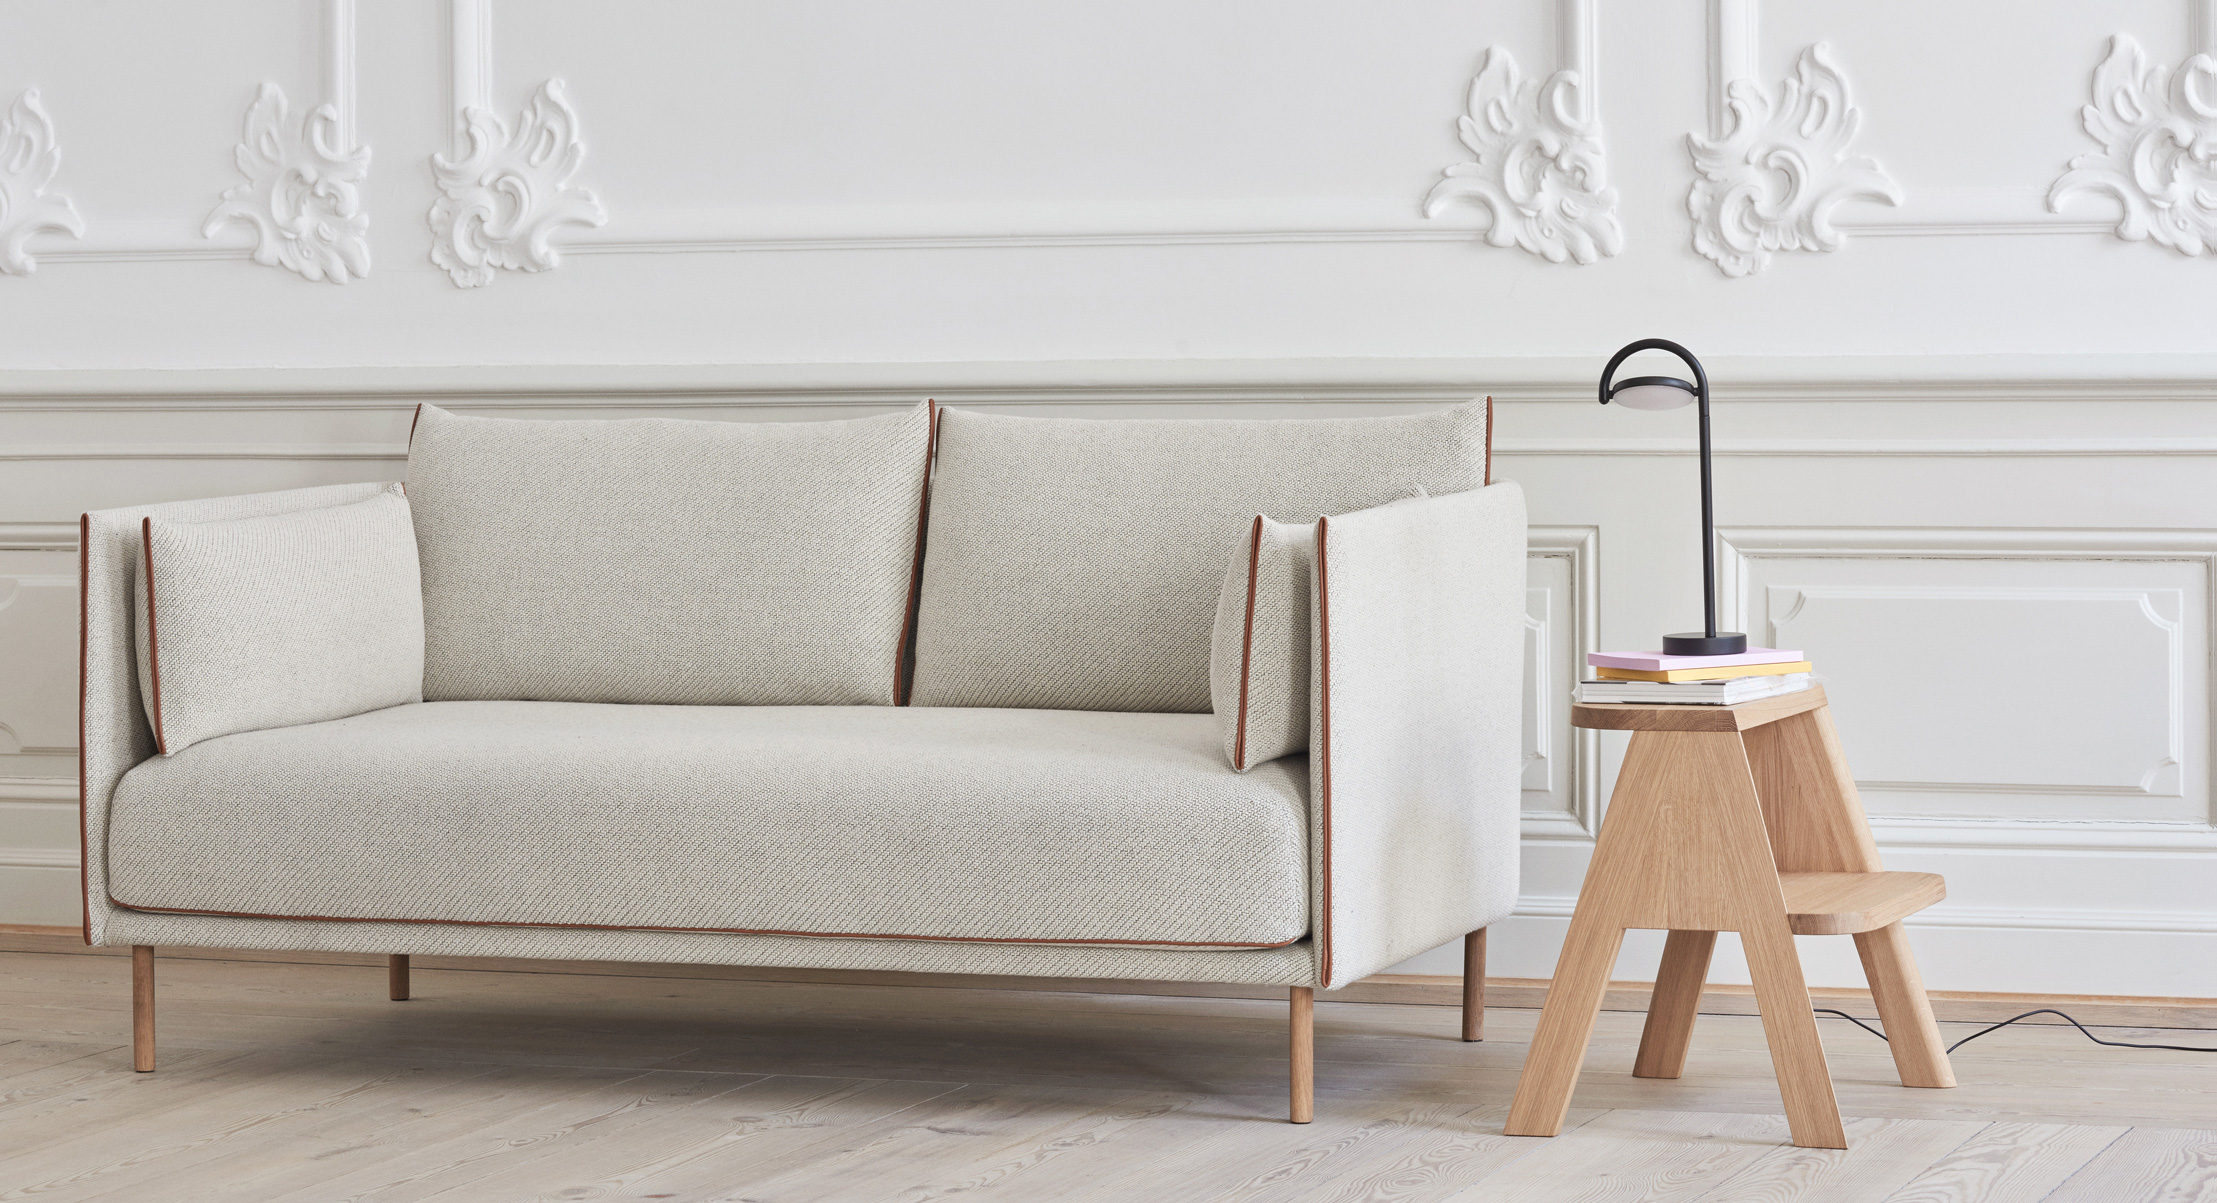 The Best Space Saving Furniture From HAY